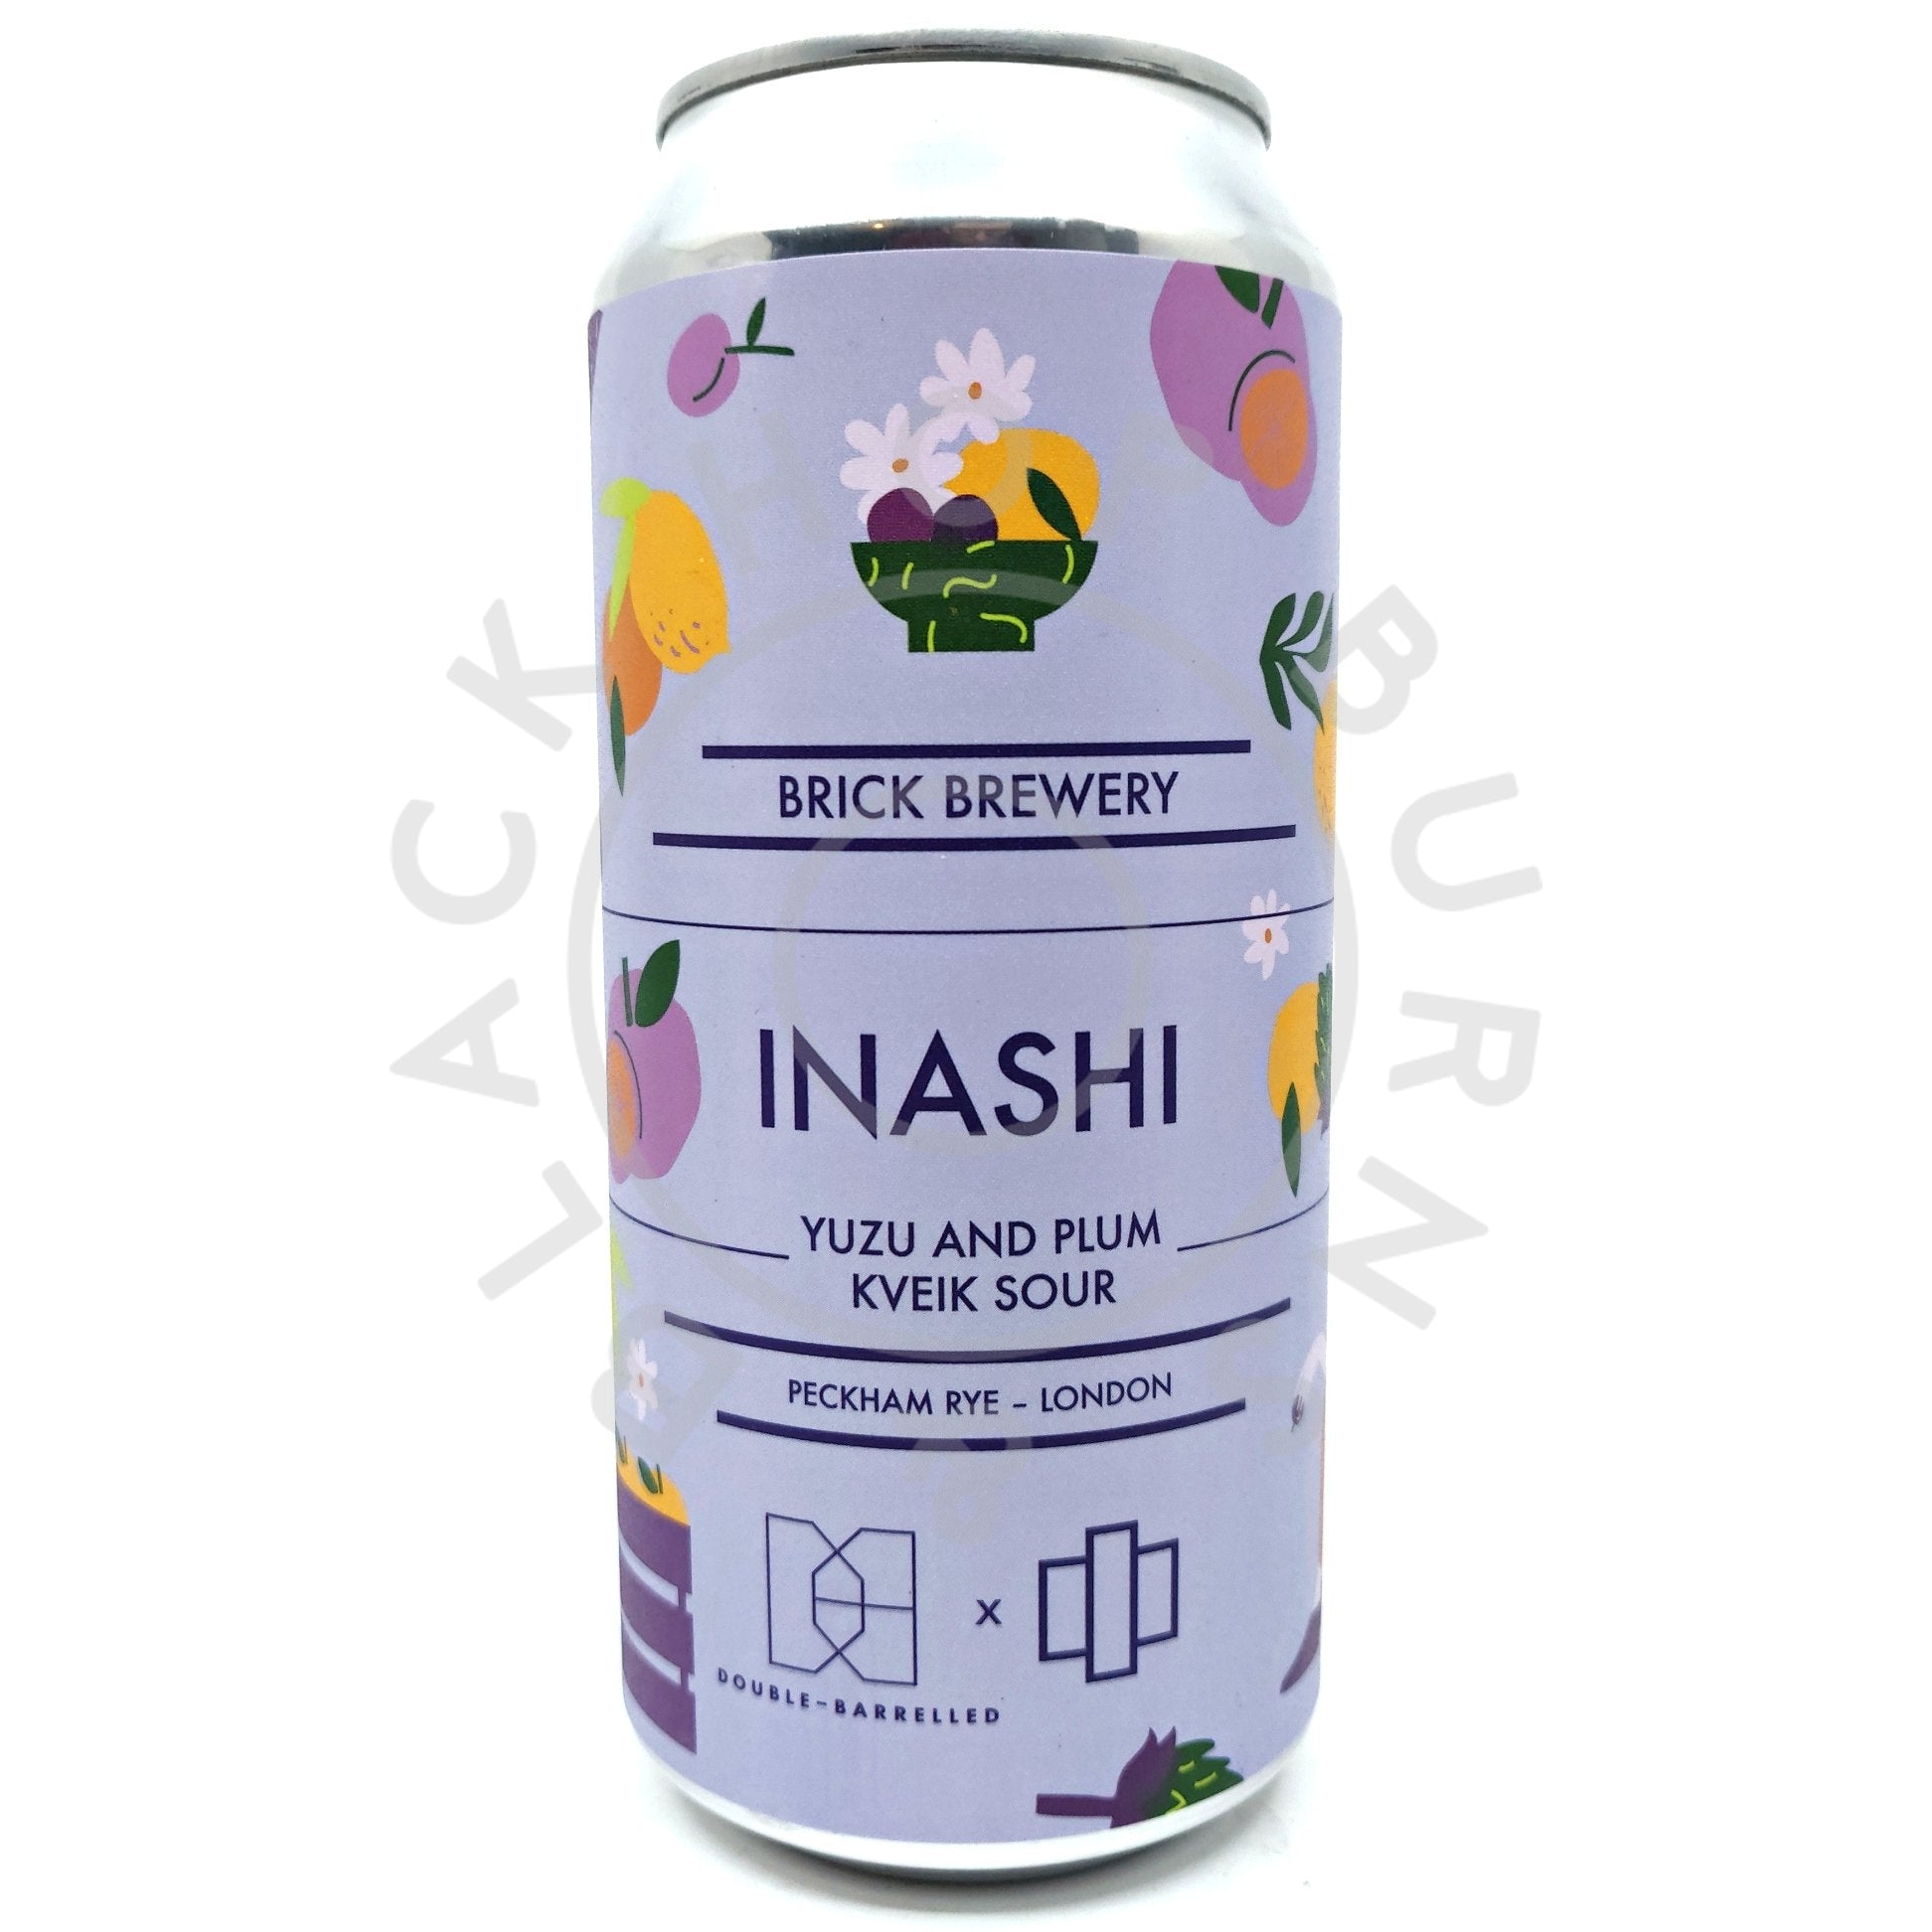 Brick Brewery x Double Barrelled Inashi Yuzu & Plum Kveik Sour 4.5% (440ml can)-Hop Burns & Black